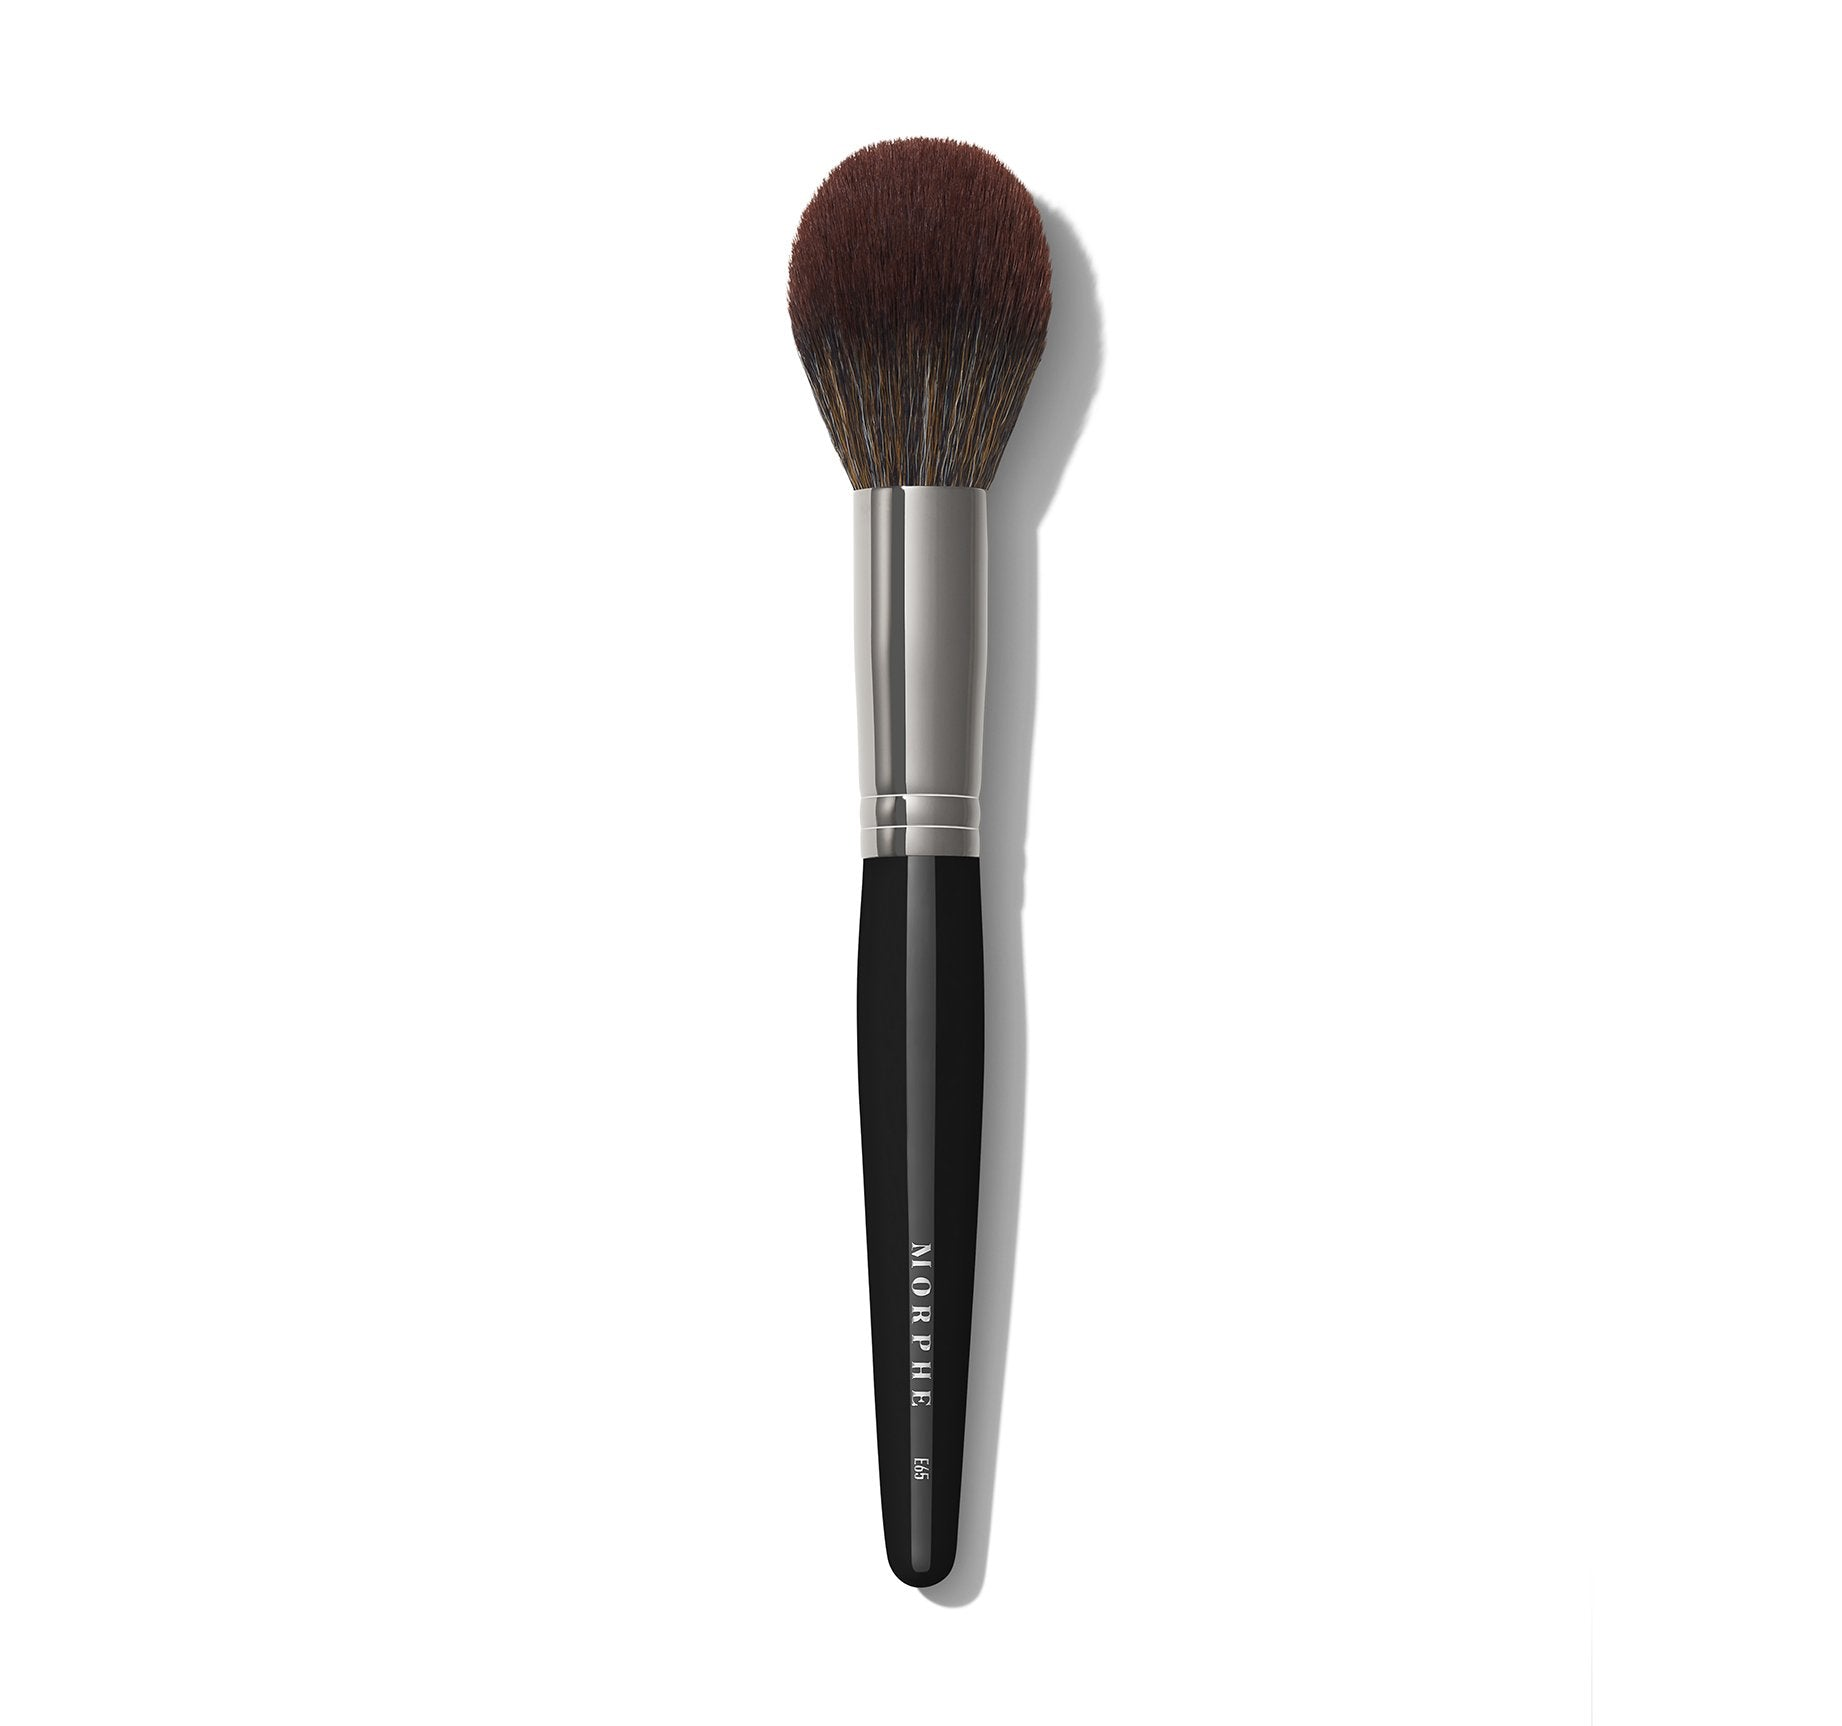 E65 FACE & CHEEK POWDER BRUSH, view larger image